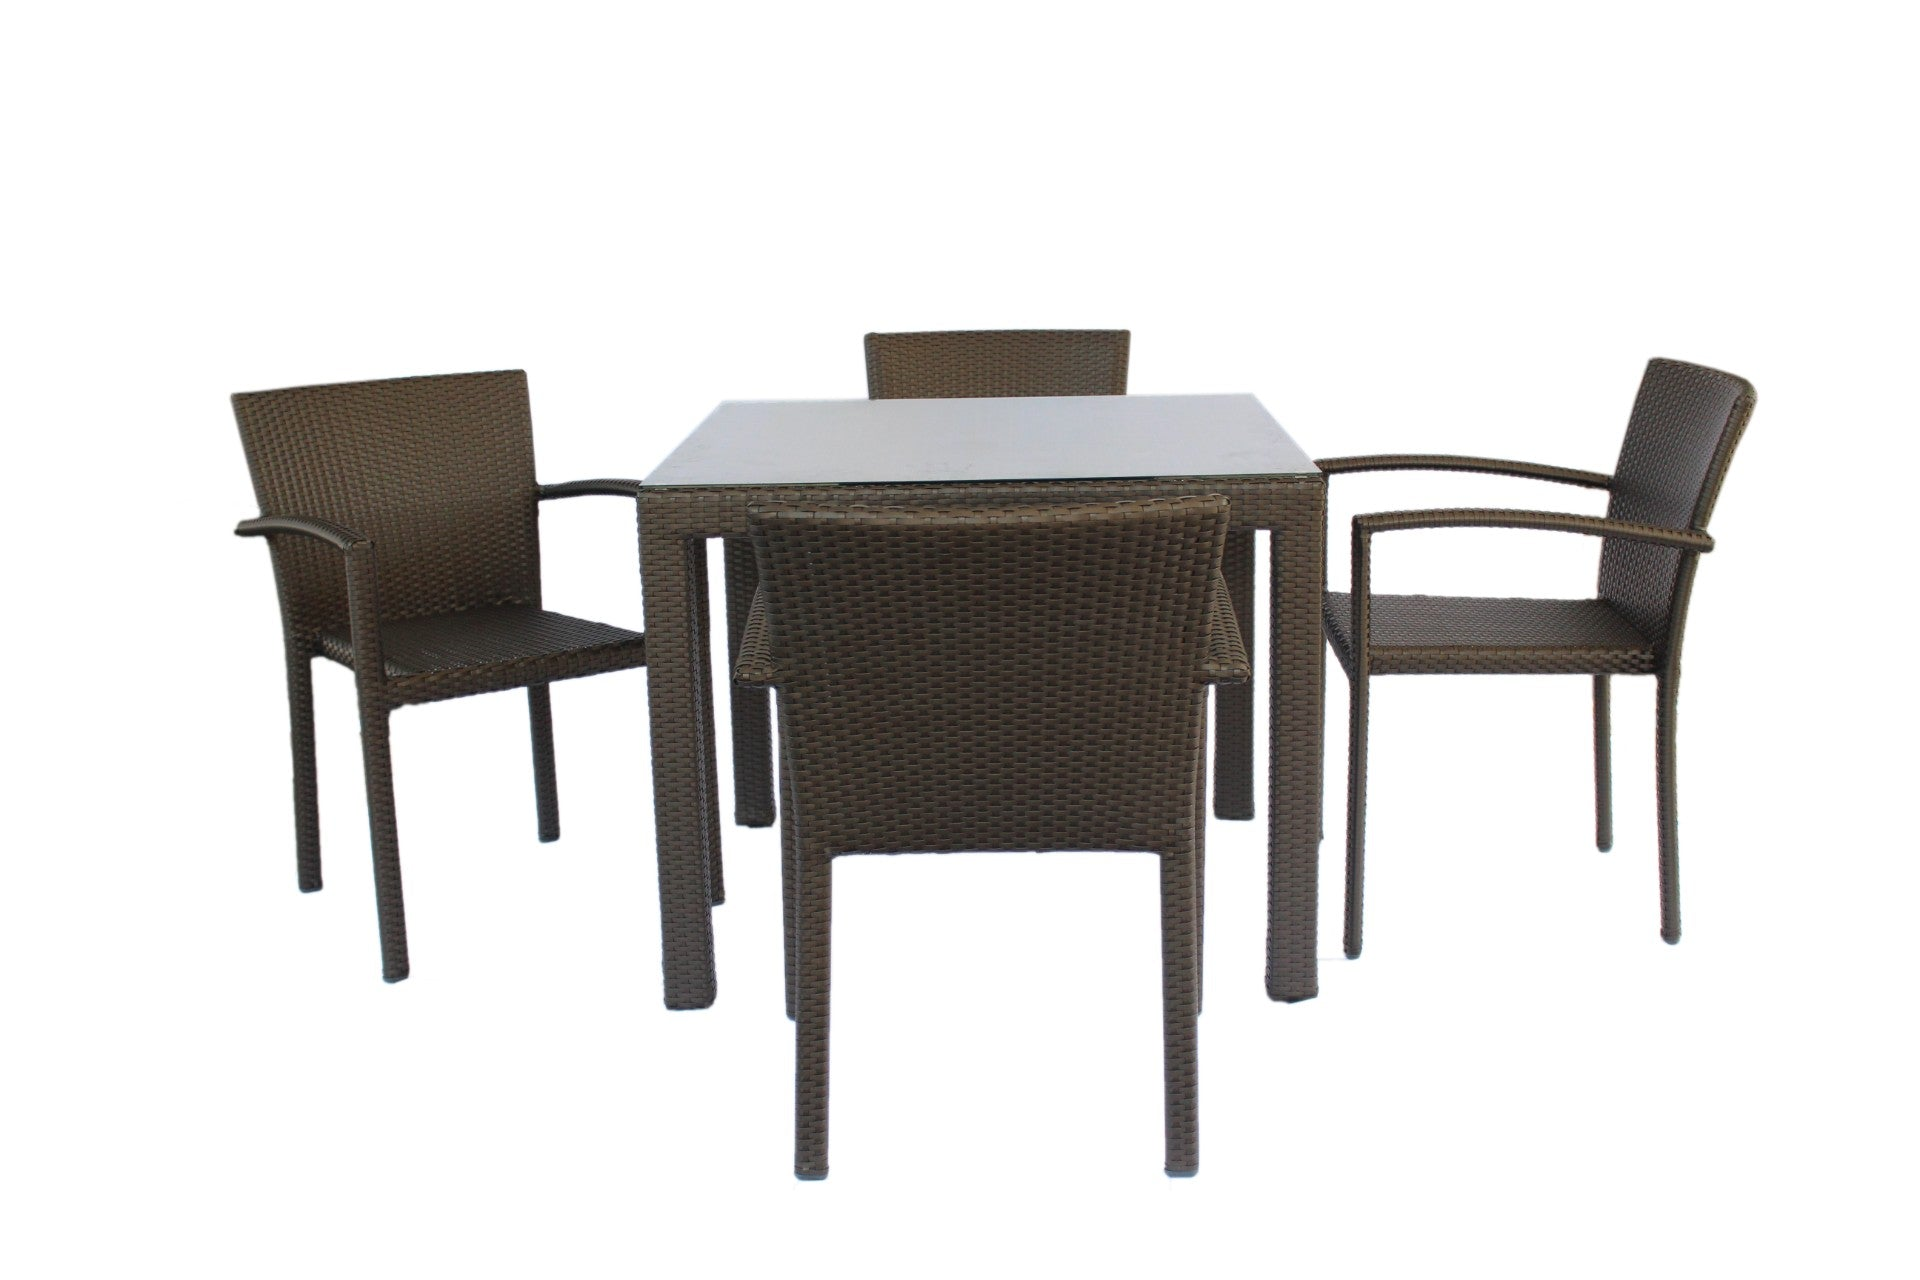 Panama 4-Seater Dining Set